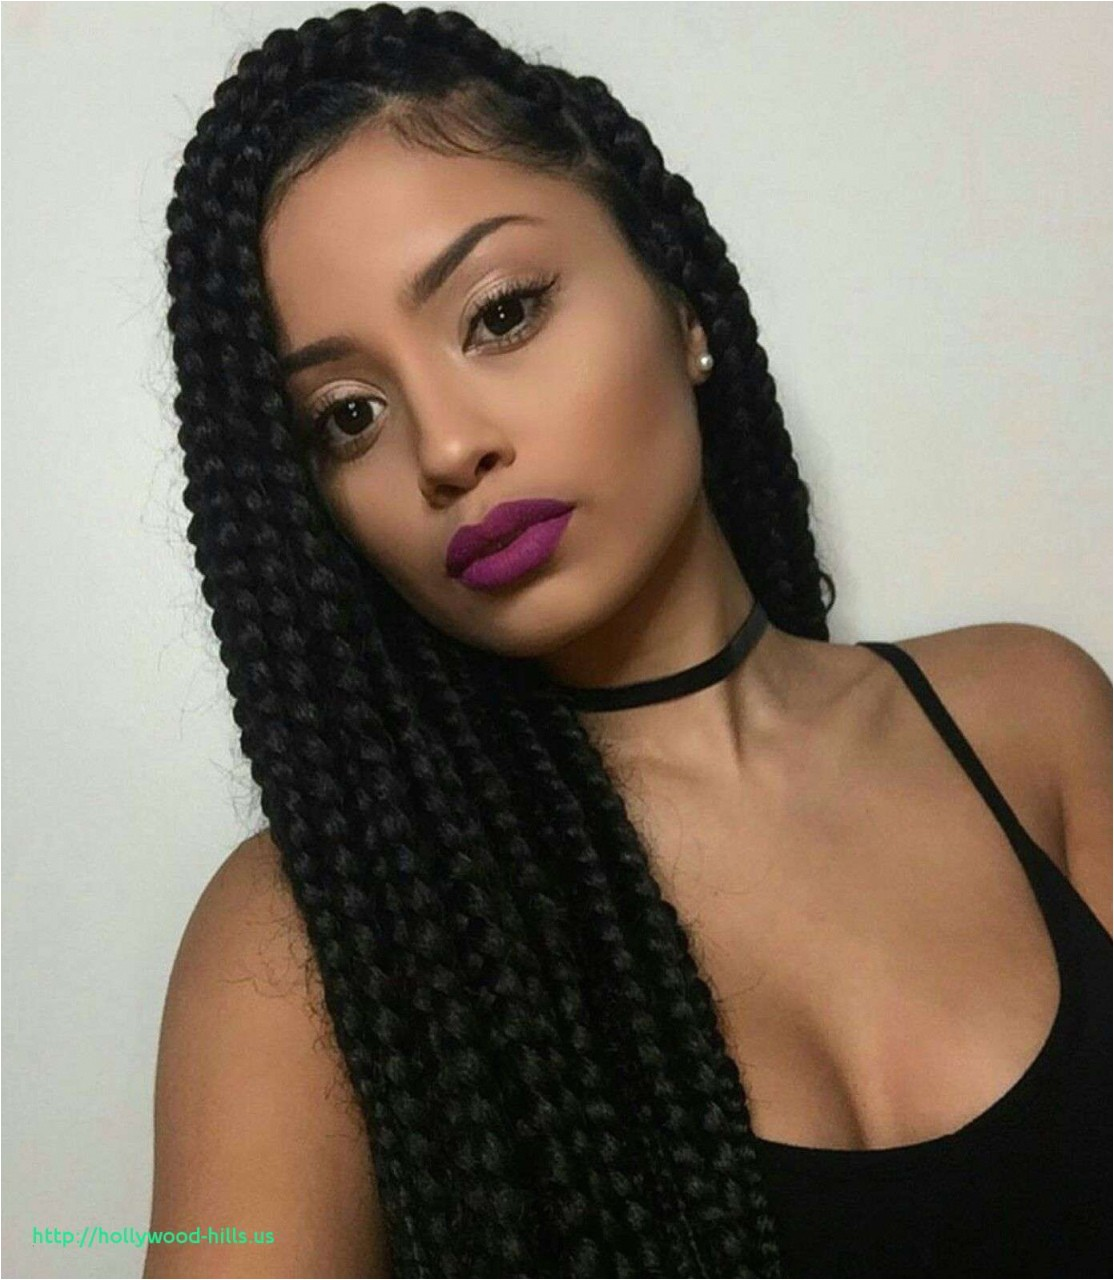 55 Hairstyles for Black Women with Natural Hair New Hairstyle App Unique Hairstyles Phone App Fresh